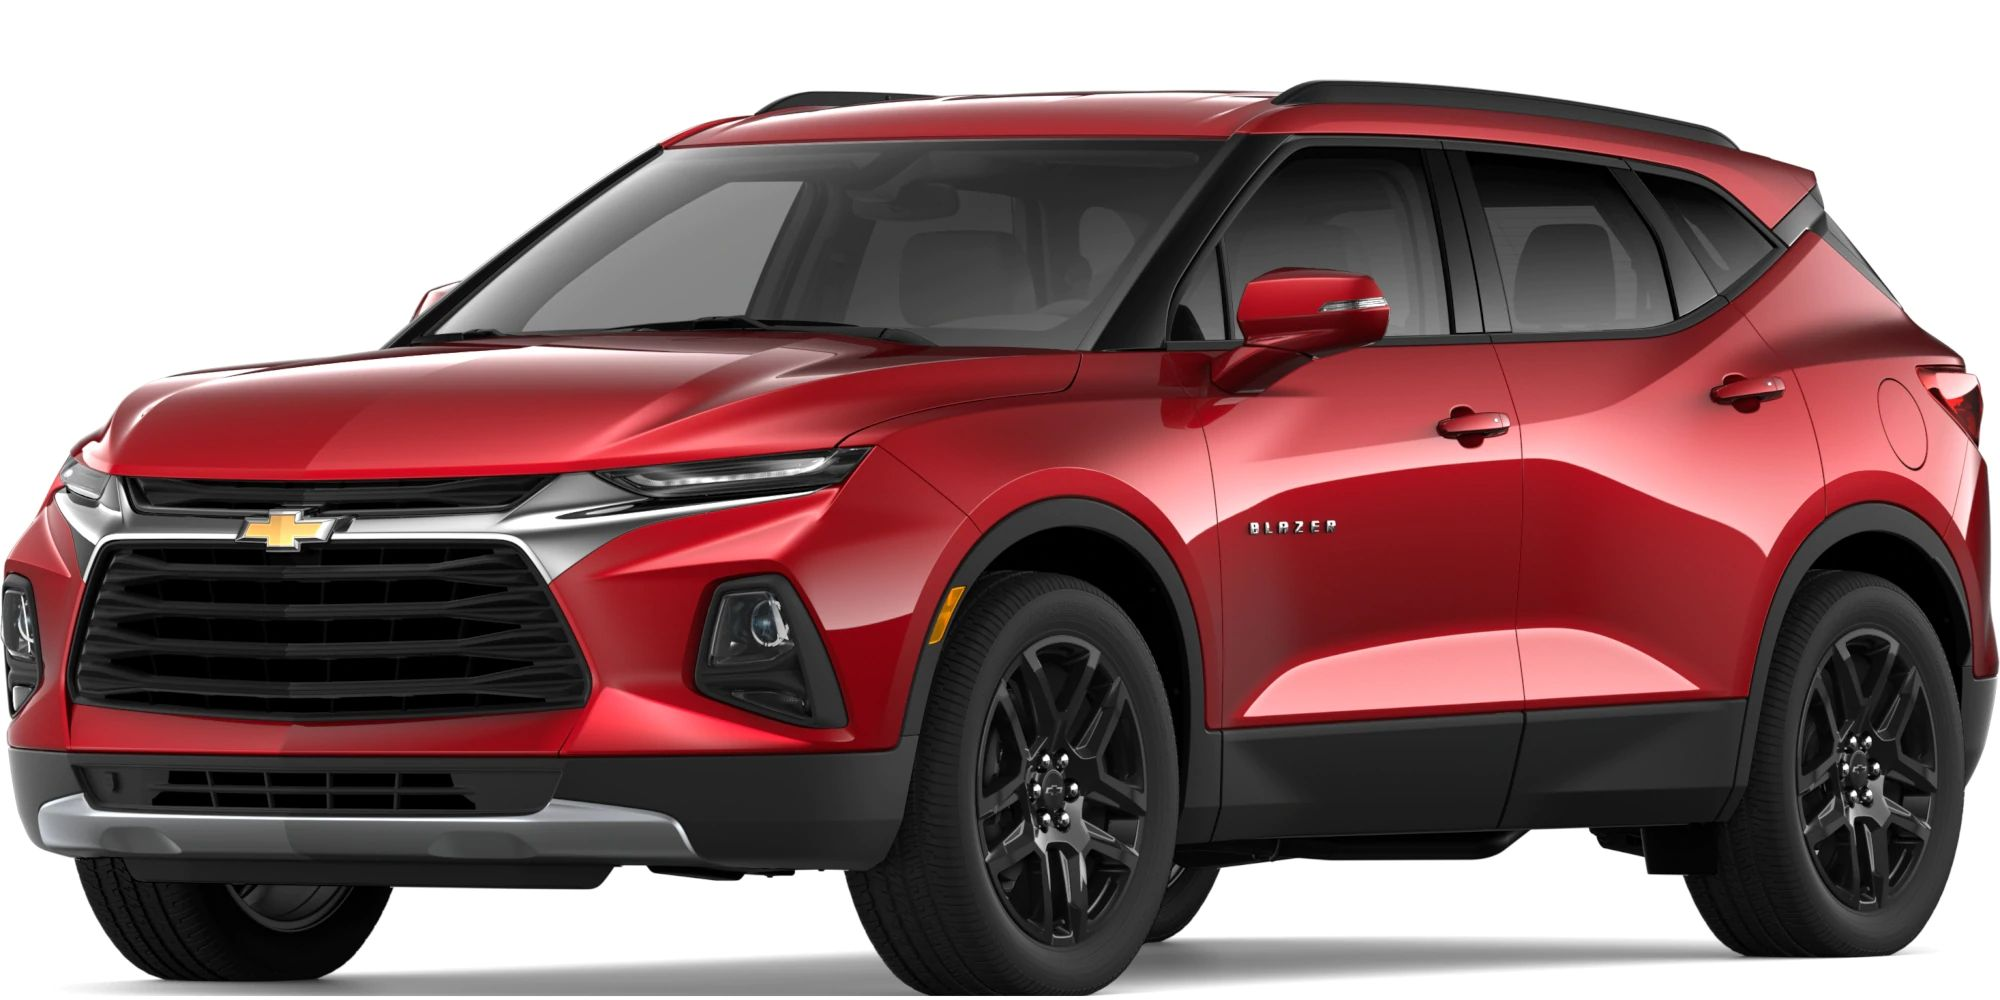 2019 Chevy Blazer Exterior Driver Side Front Profile in Cajun Red Tintcoat